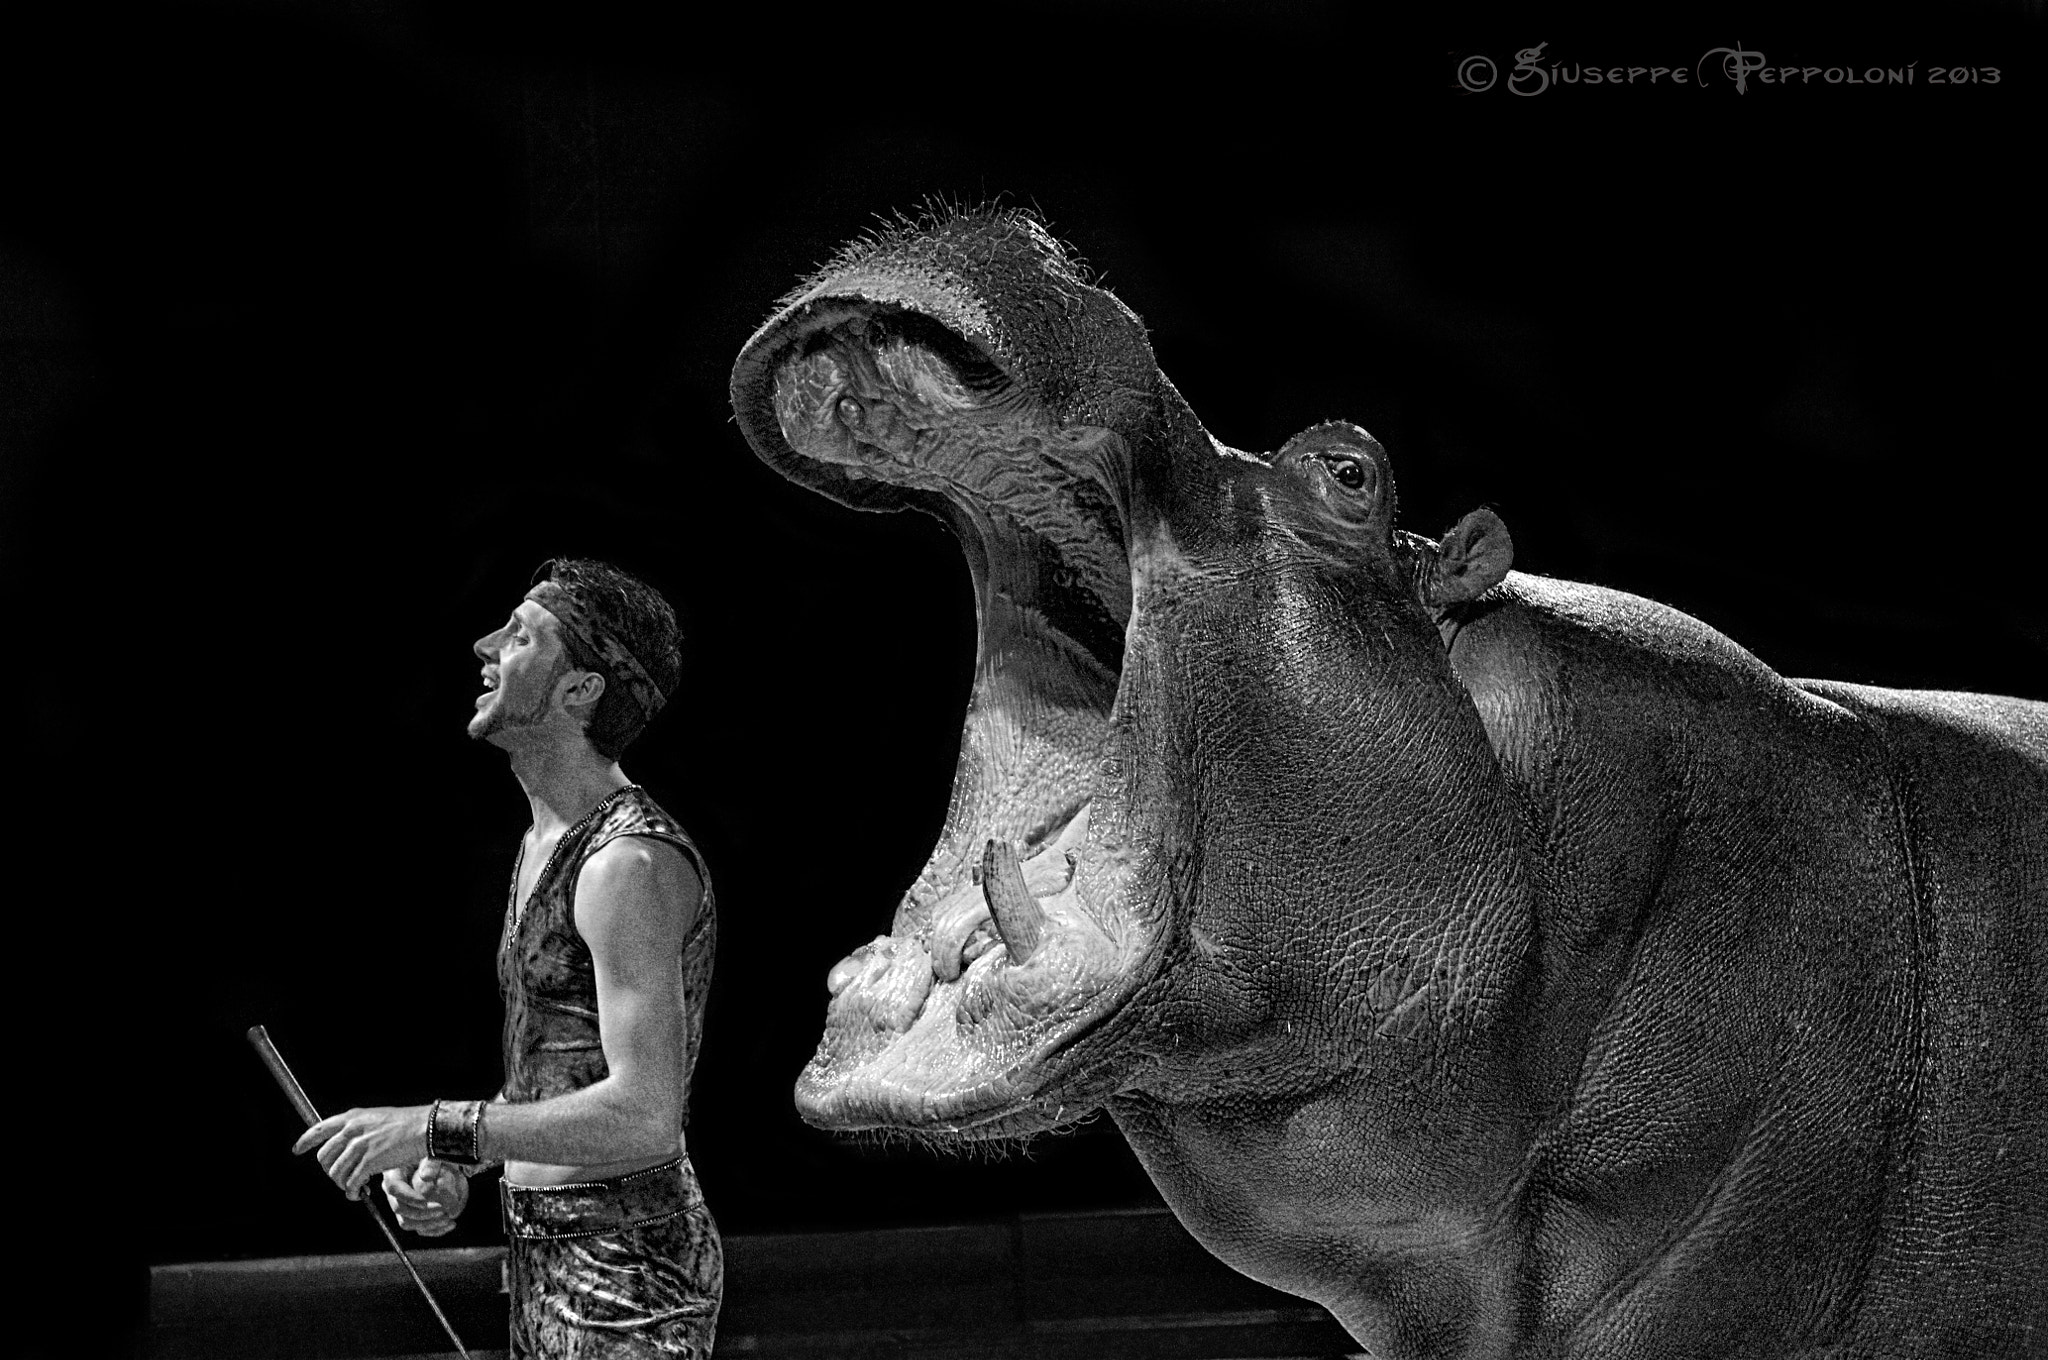 Photograph At the circus by Giuseppe  Peppoloni on 500px